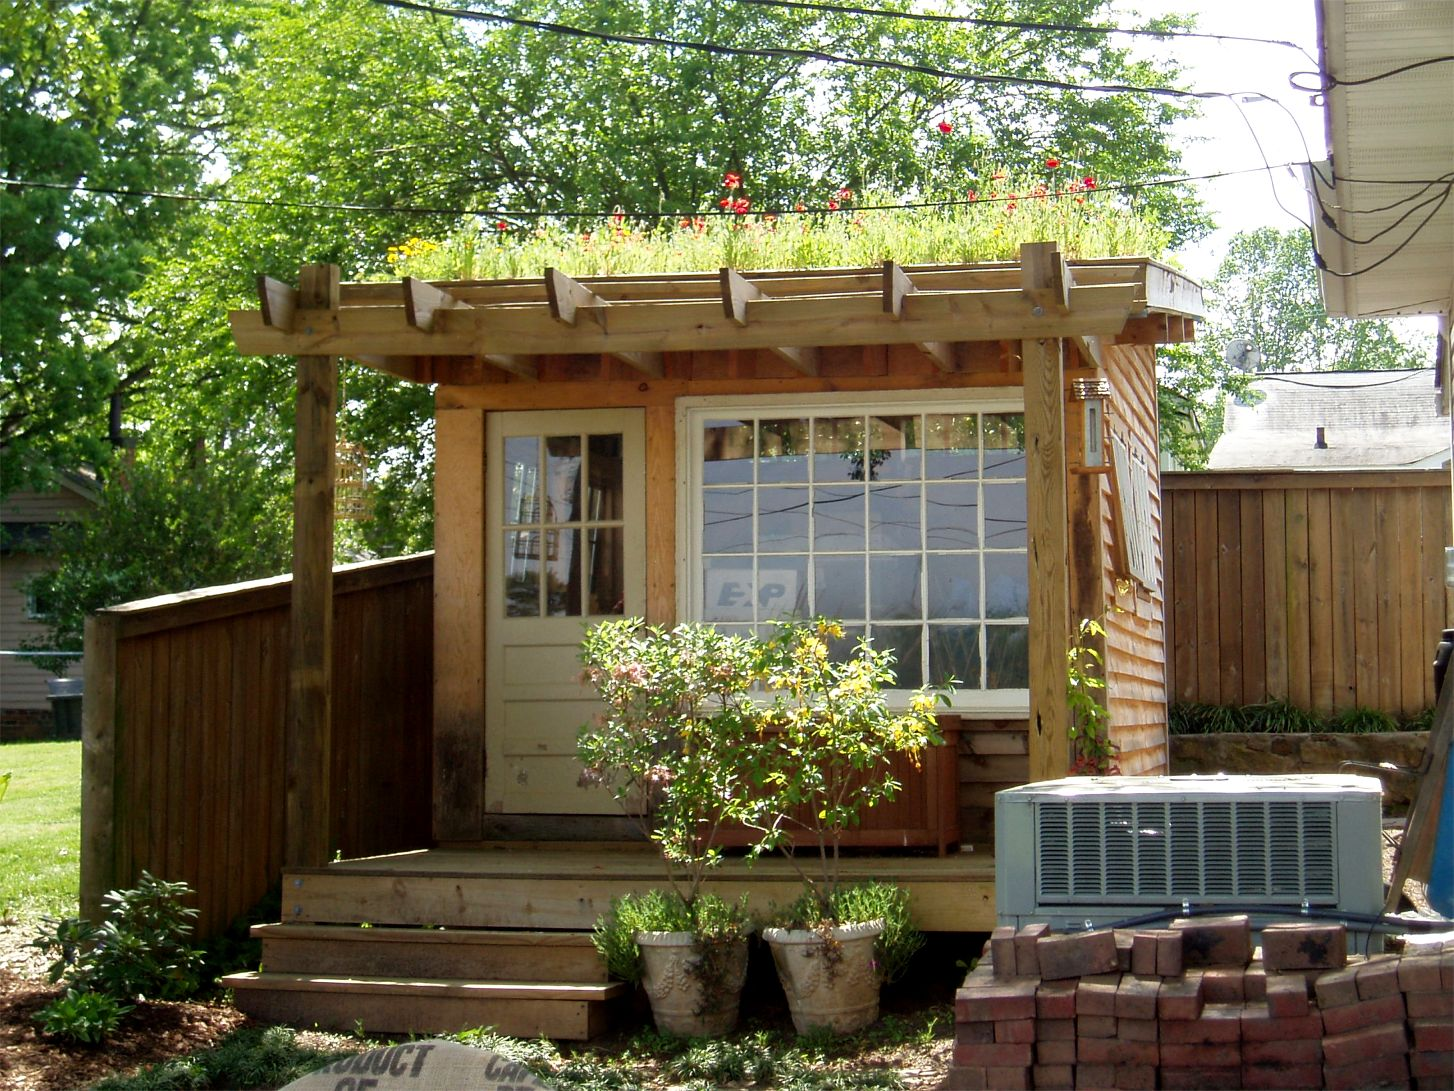 Beautiful backyard shed with a wooden exterior